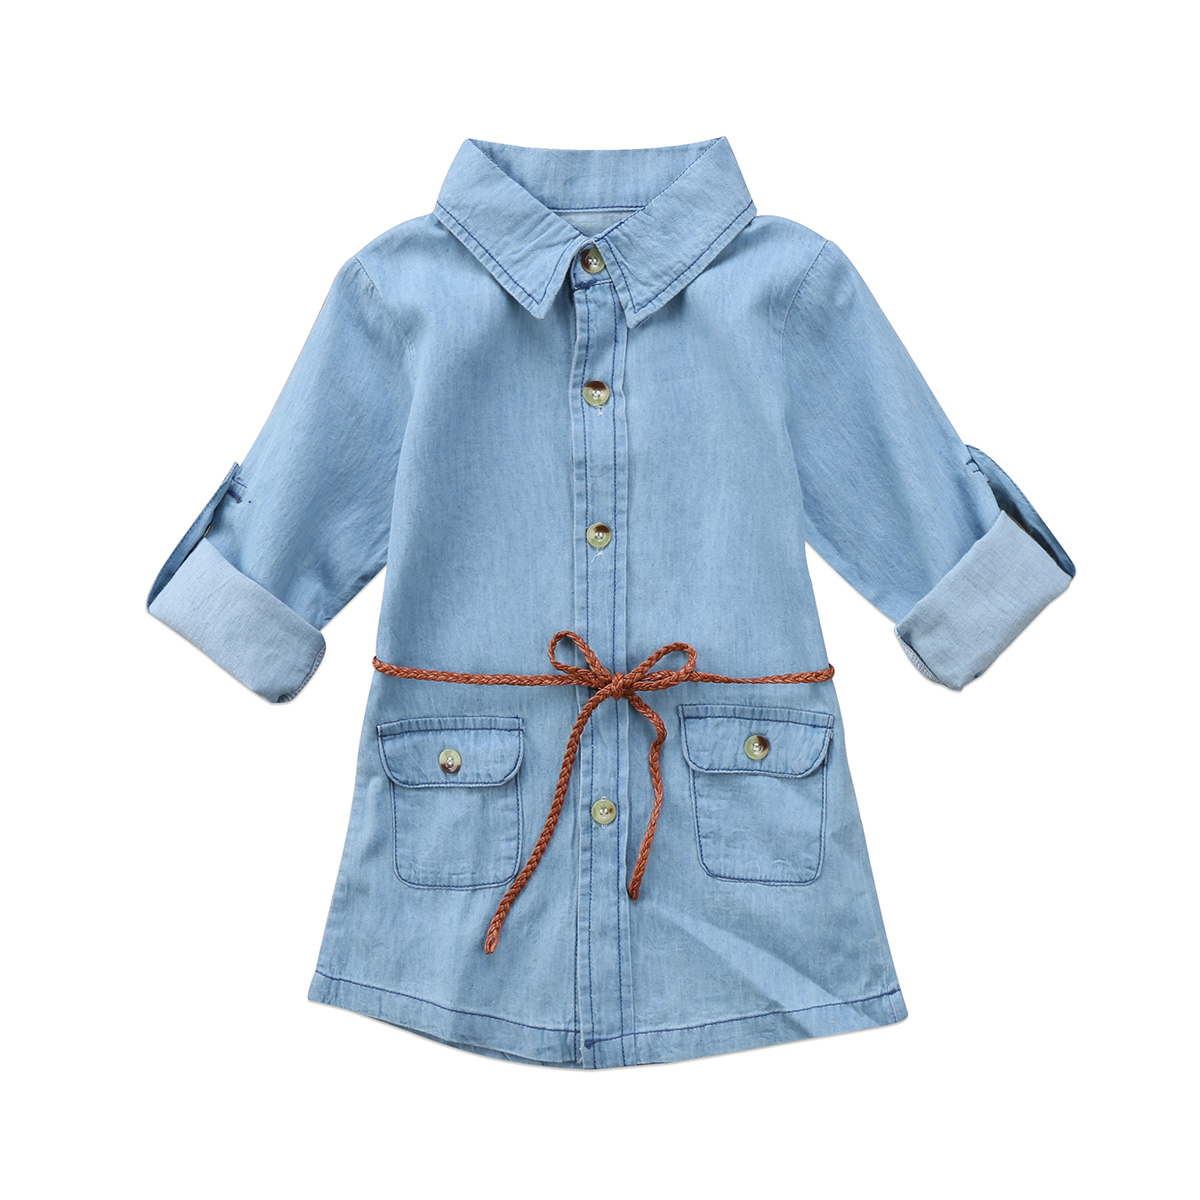 Baby Kids Girl Denim Long Shirt Fashion Denim Color Drawstring waist Shirt mini dresser make up tank mirror small dresser